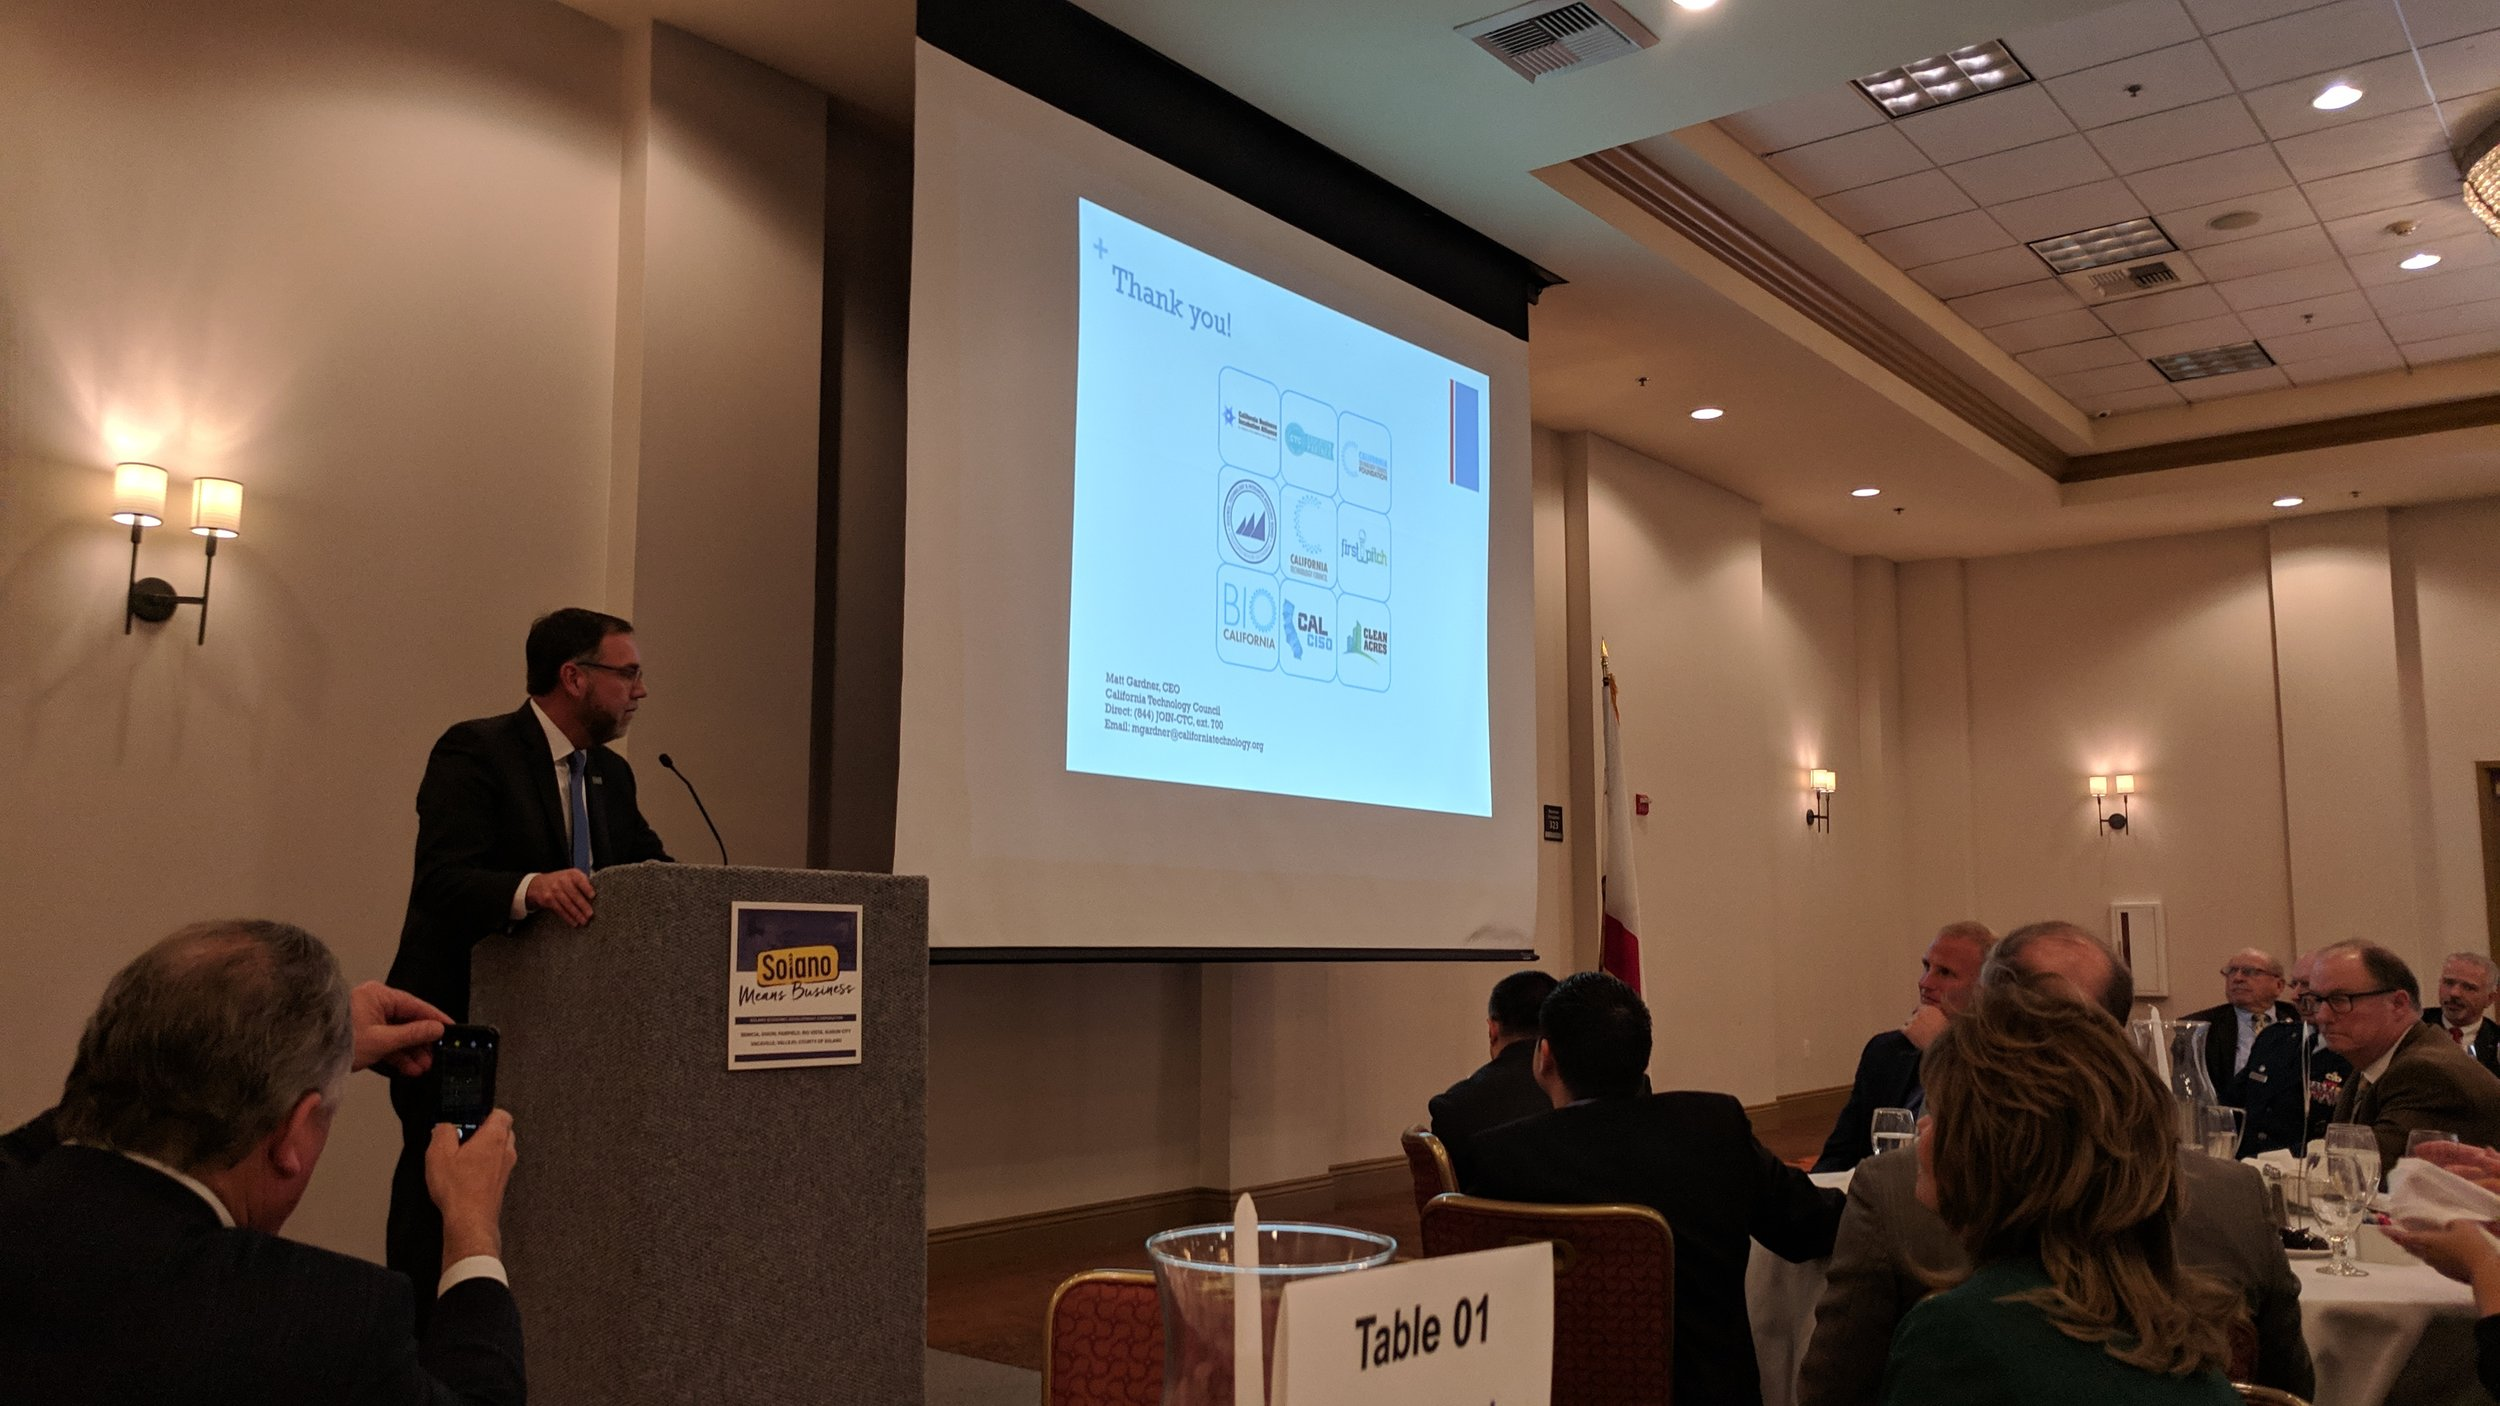 Robert Burris, chief executive of Solano EDC, speaks to attendees at the group's annual business lunch.